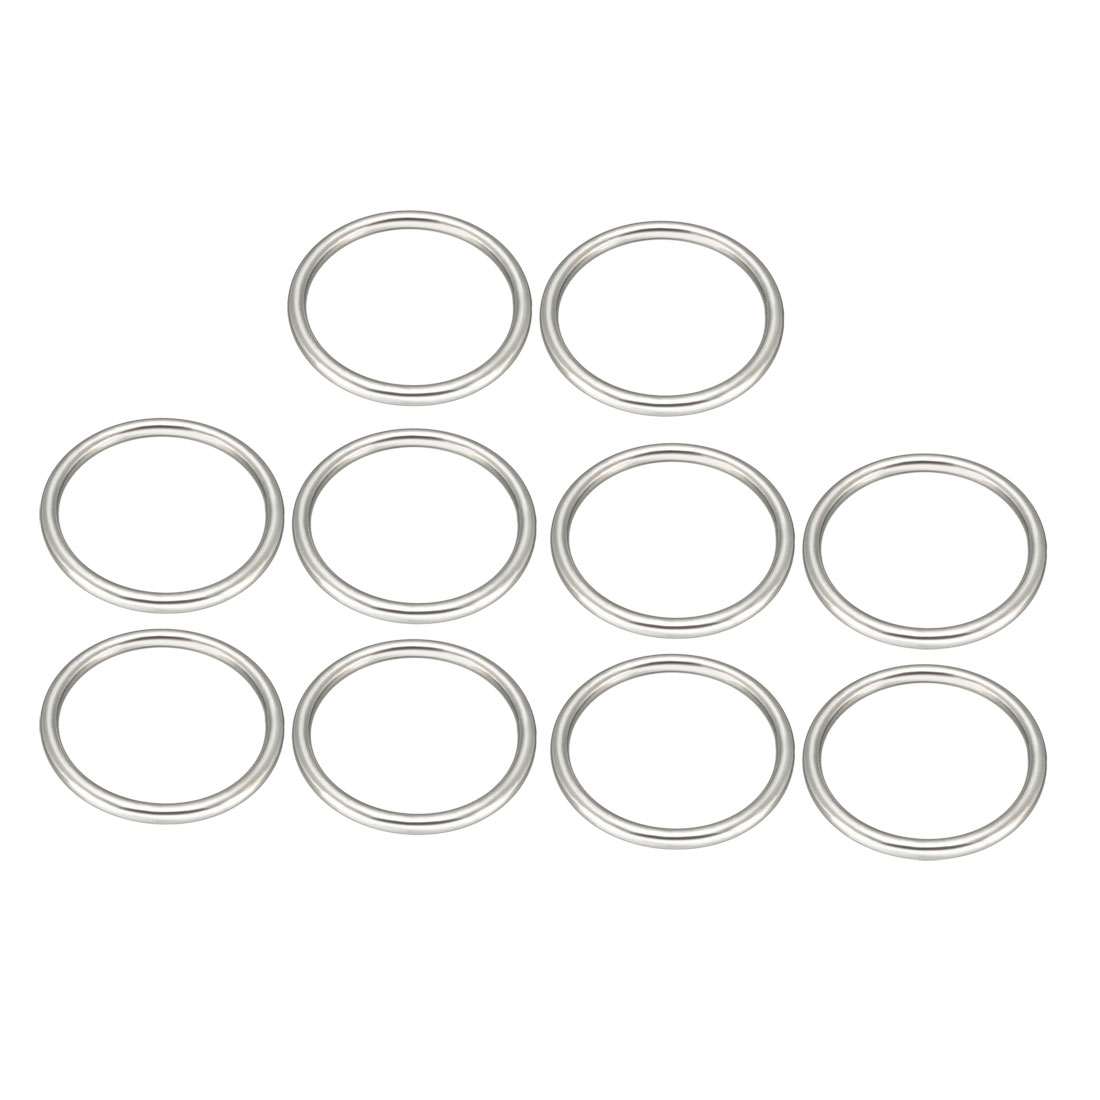 Uxcell 10 Pcs Multi-Purpose Metal O Ring Buckle Welded 60mm X 50mm X 5mm For Hardware Bags Ring Hand DIY Accessories